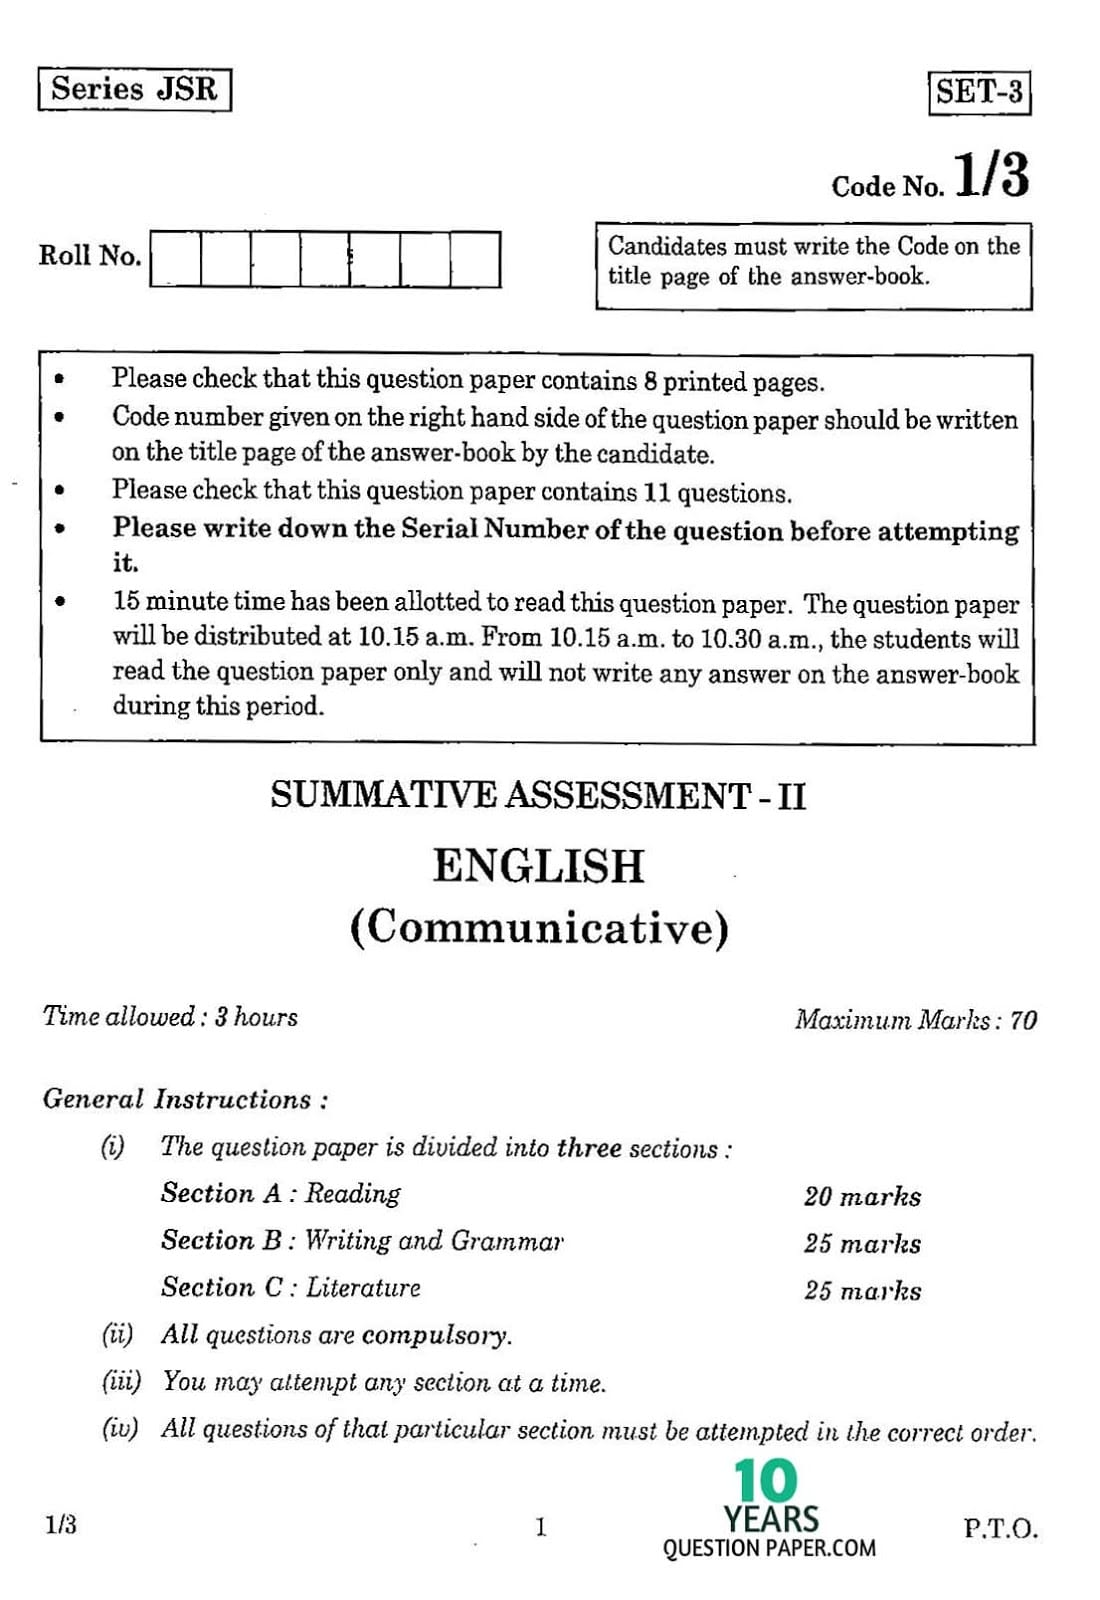 CBSE Class 10 English Communicative 2016 Question Paper